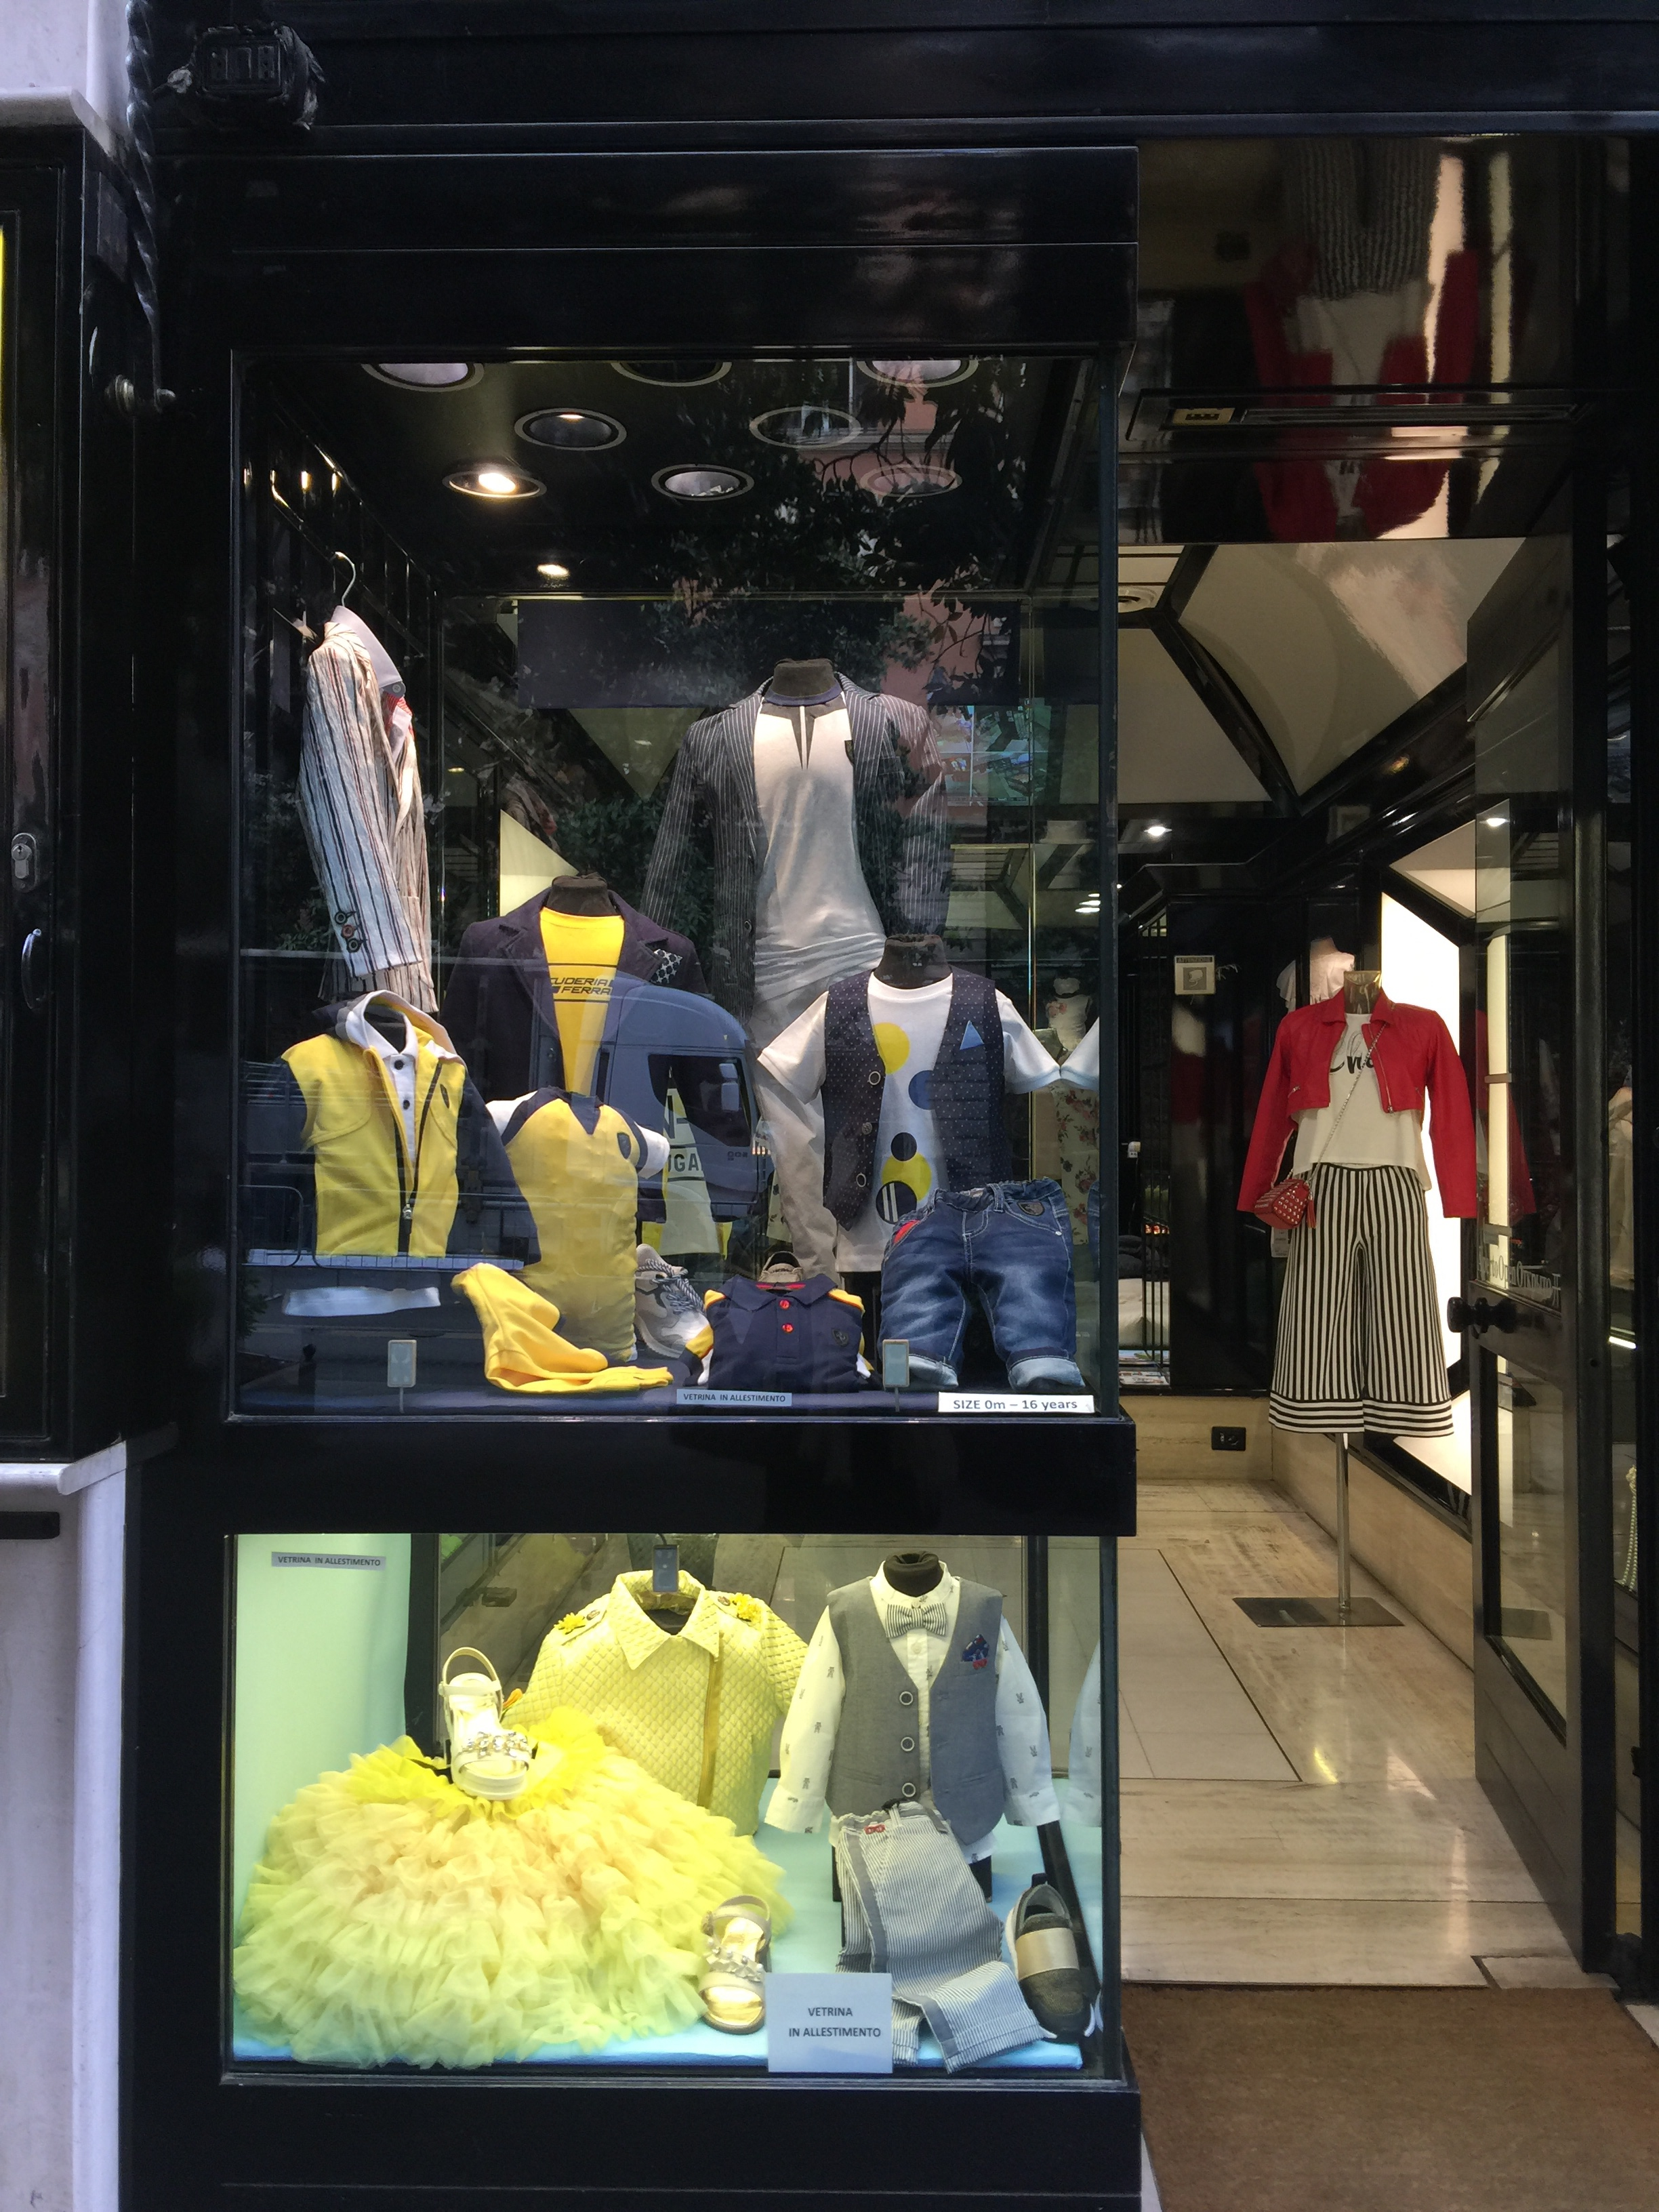 Kids ware -May 2019- Roma Luxury- Shopping in Rome